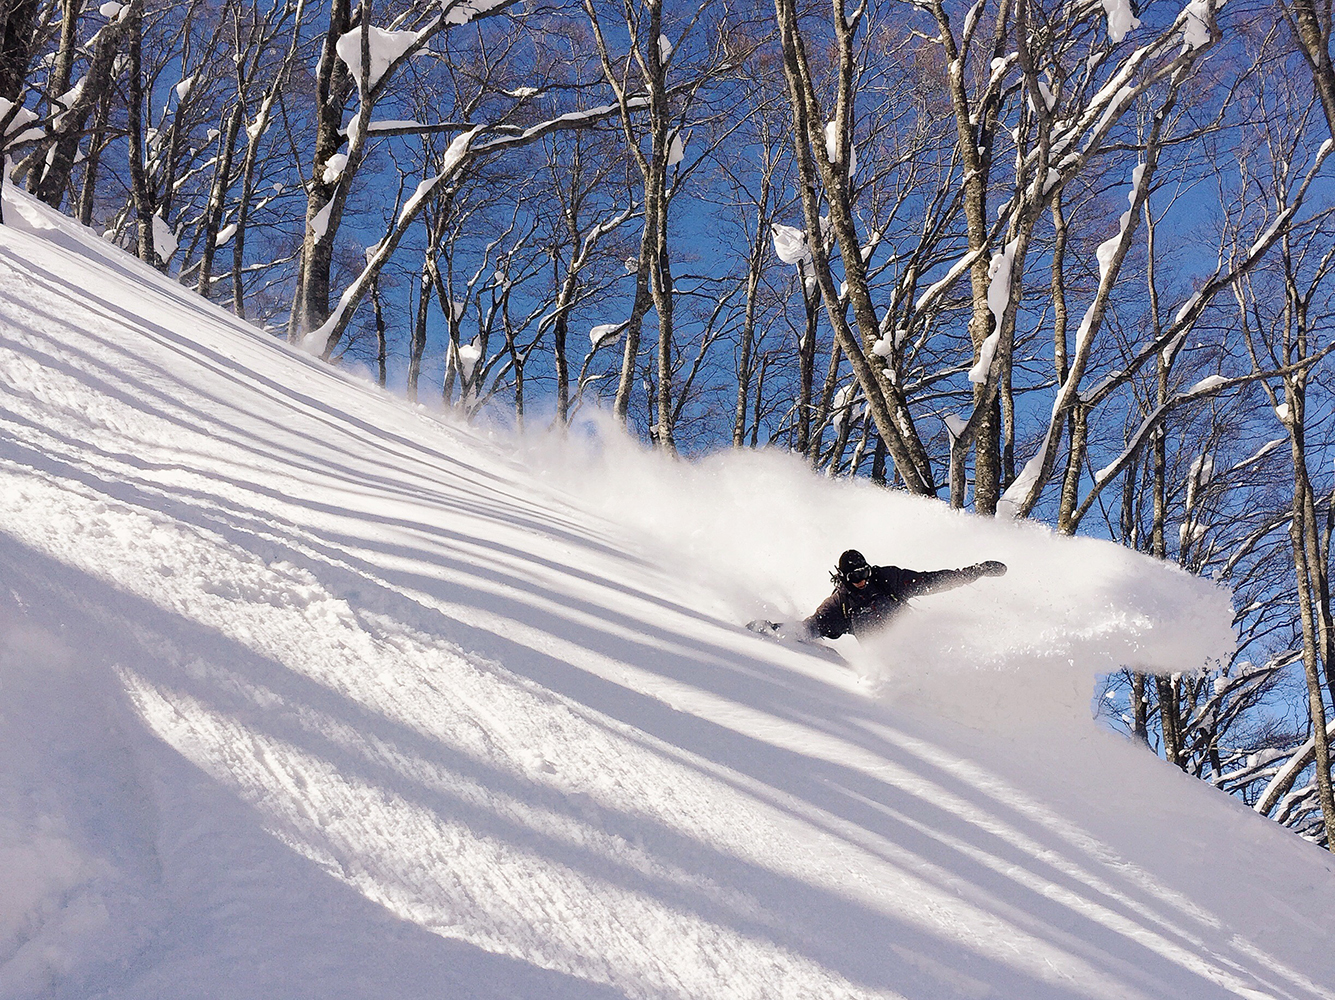 What You Need to Know About Skiing in Japan